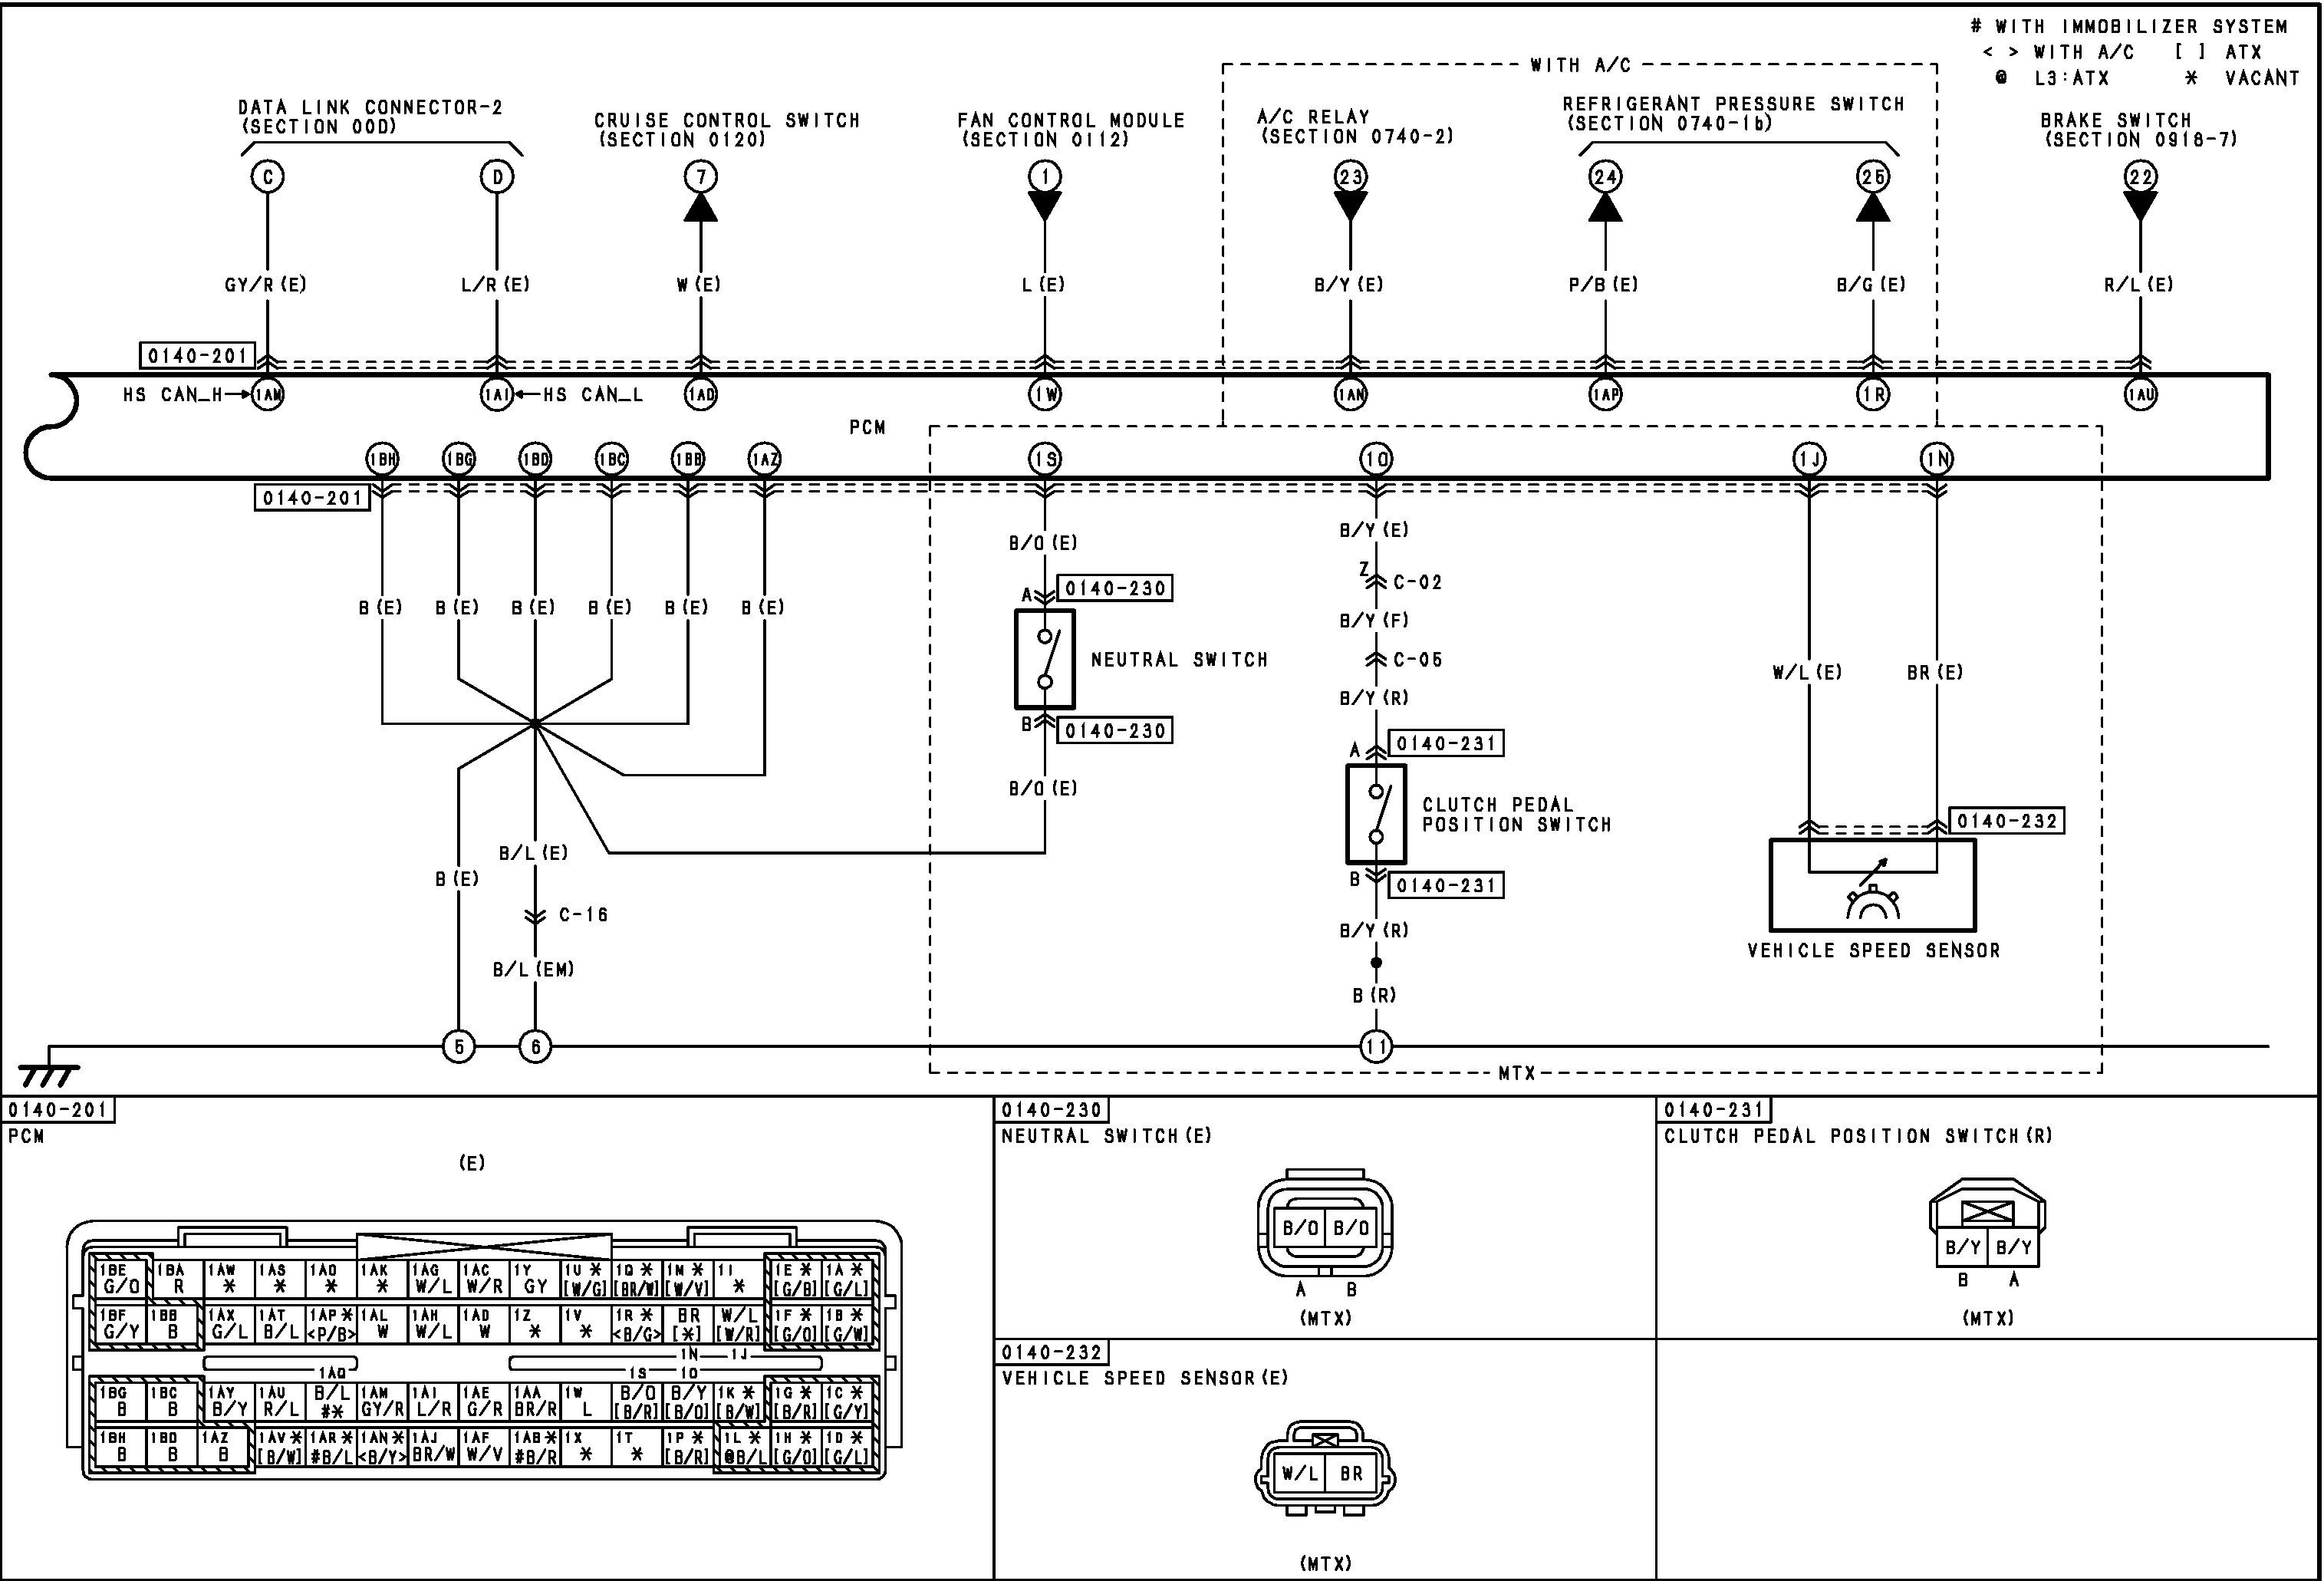 mazda 6 wiring diagram 2005 mazda wiring diagrams attachment mazda wiring diagram attachment